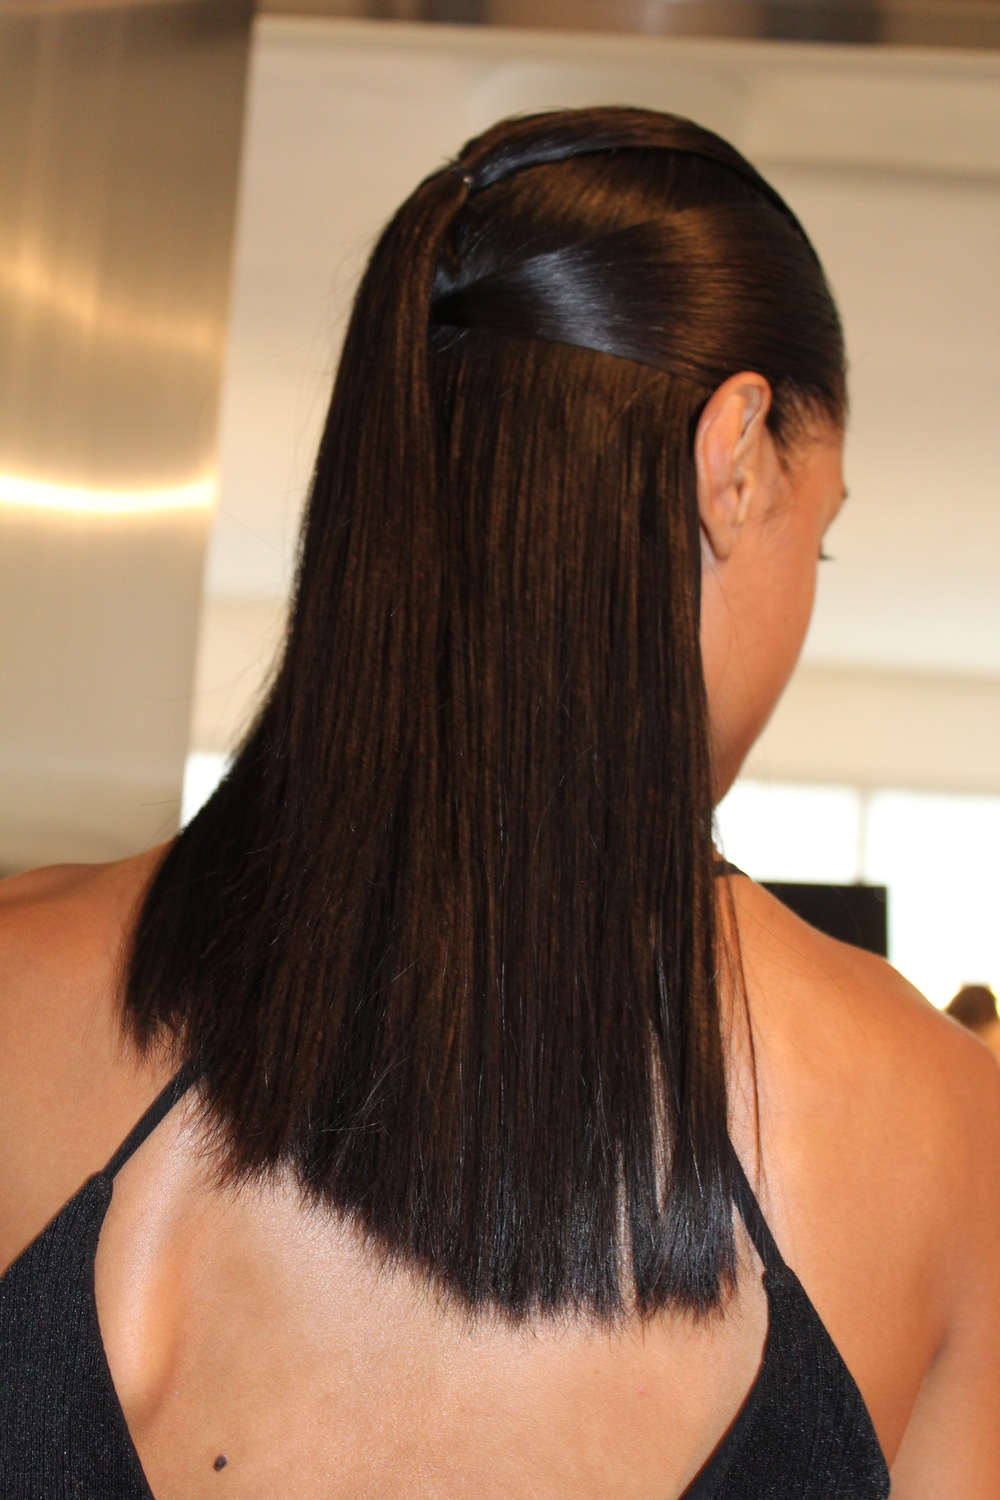 Backstage at Cushnie Et Ochs Moroccanoil made the hair all about angles and creating silky smooth strands. I'd rock this in real life.  Would you?